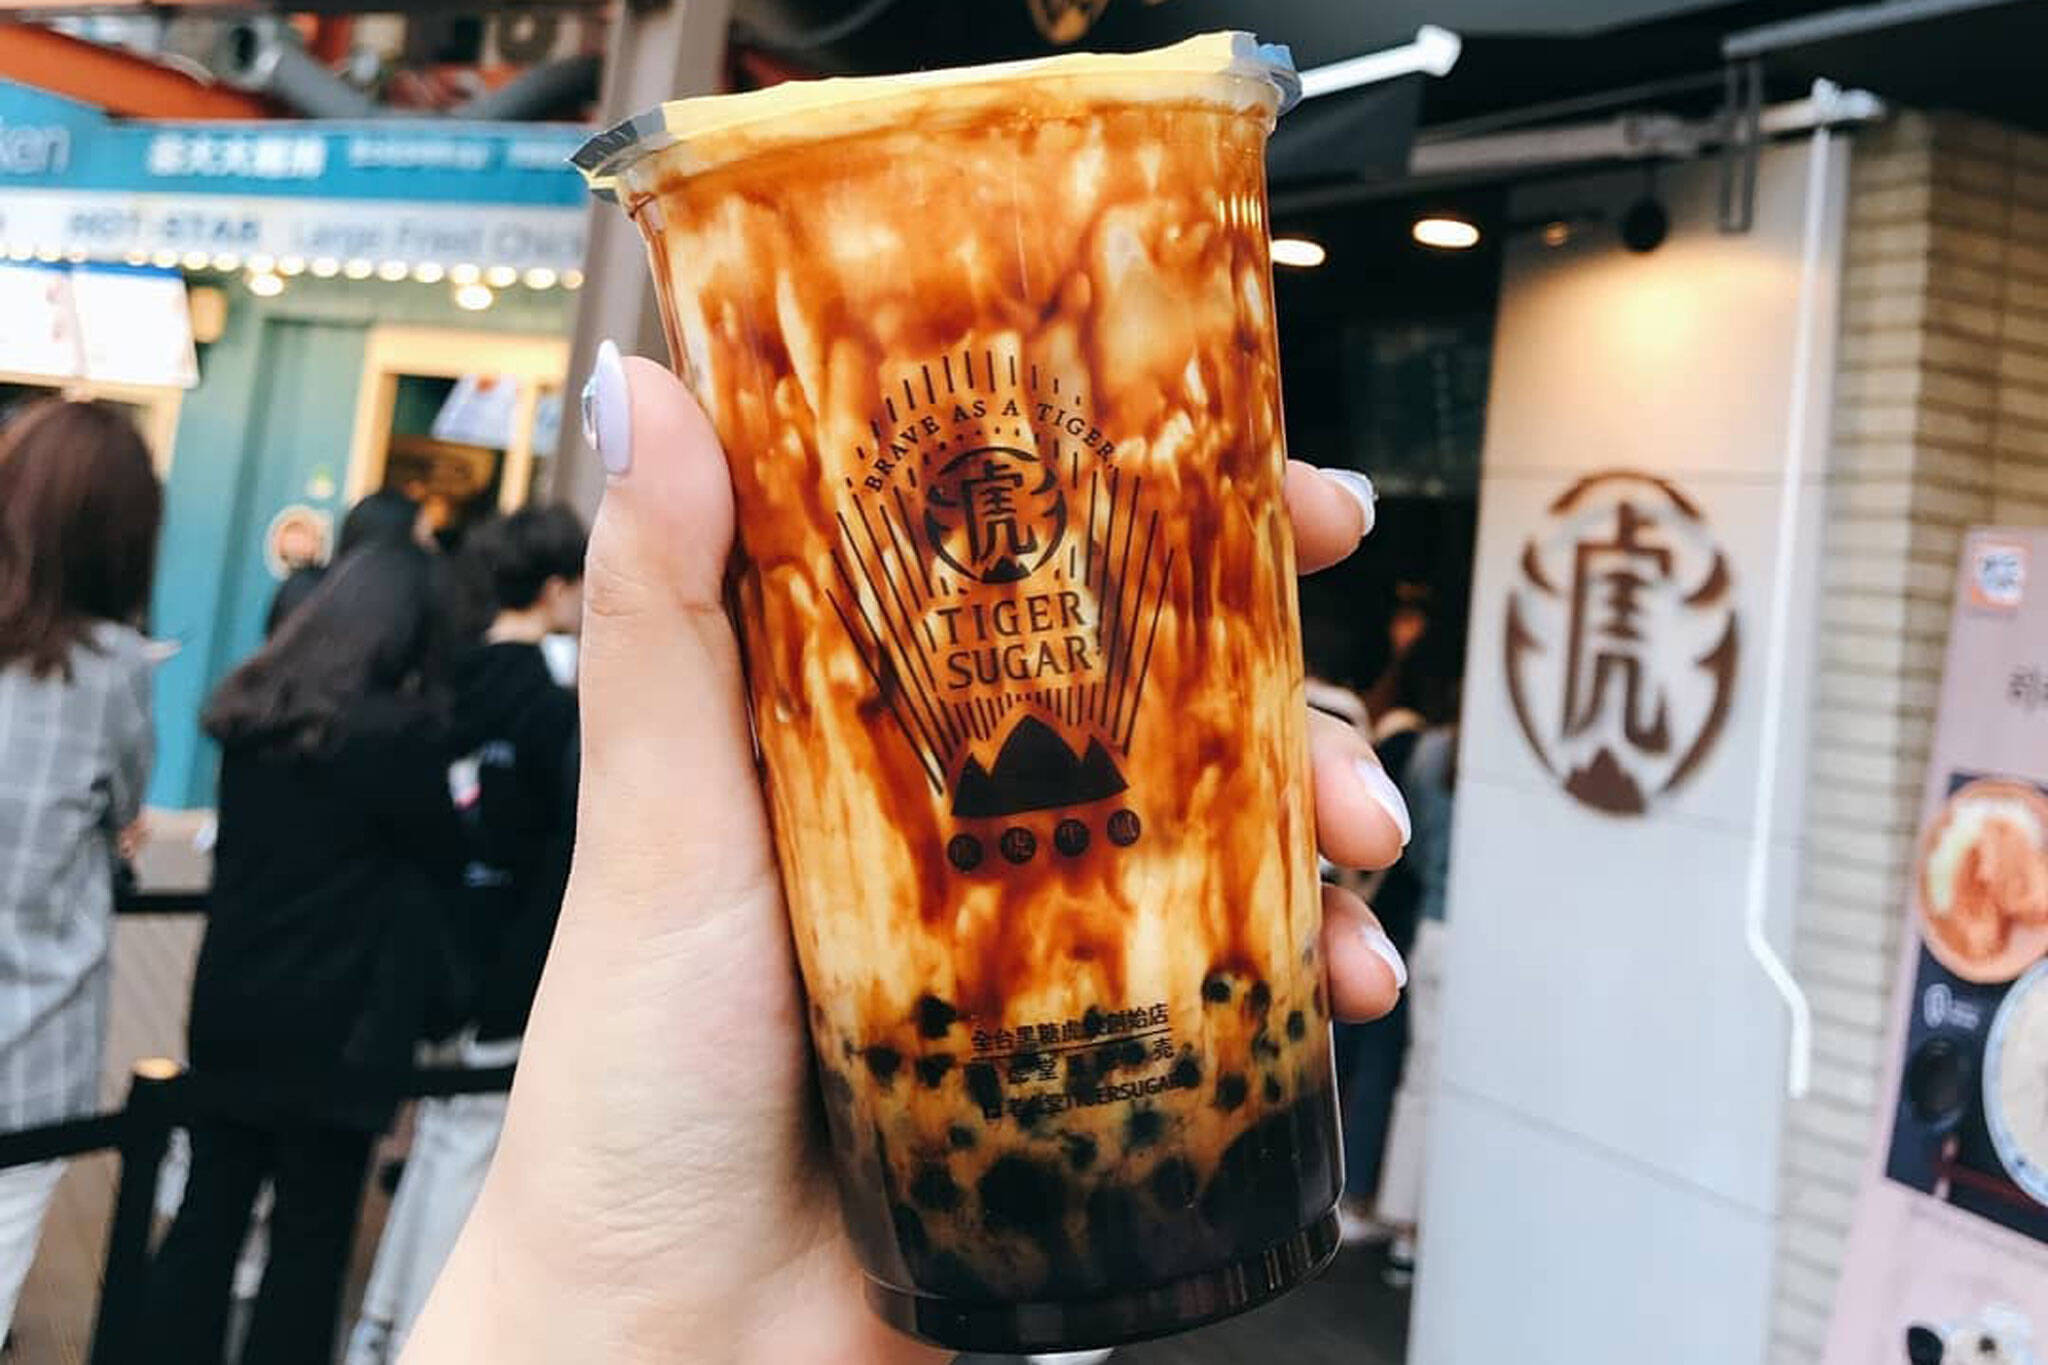 Popular Taiwanese bubble tea chain Tiger Sugar opening first